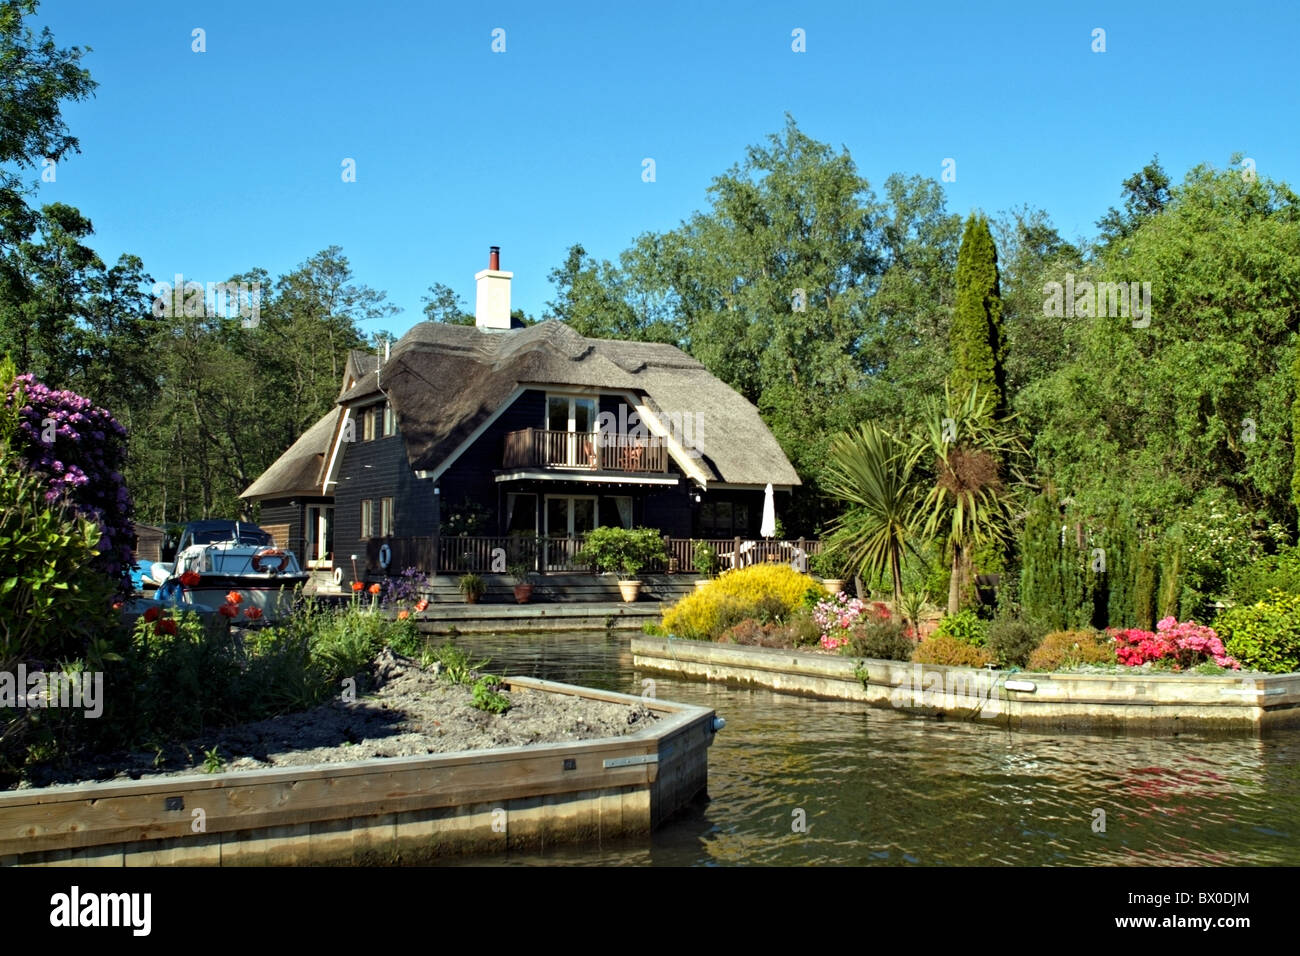 waterside property on the norfolk broads - Stock Image